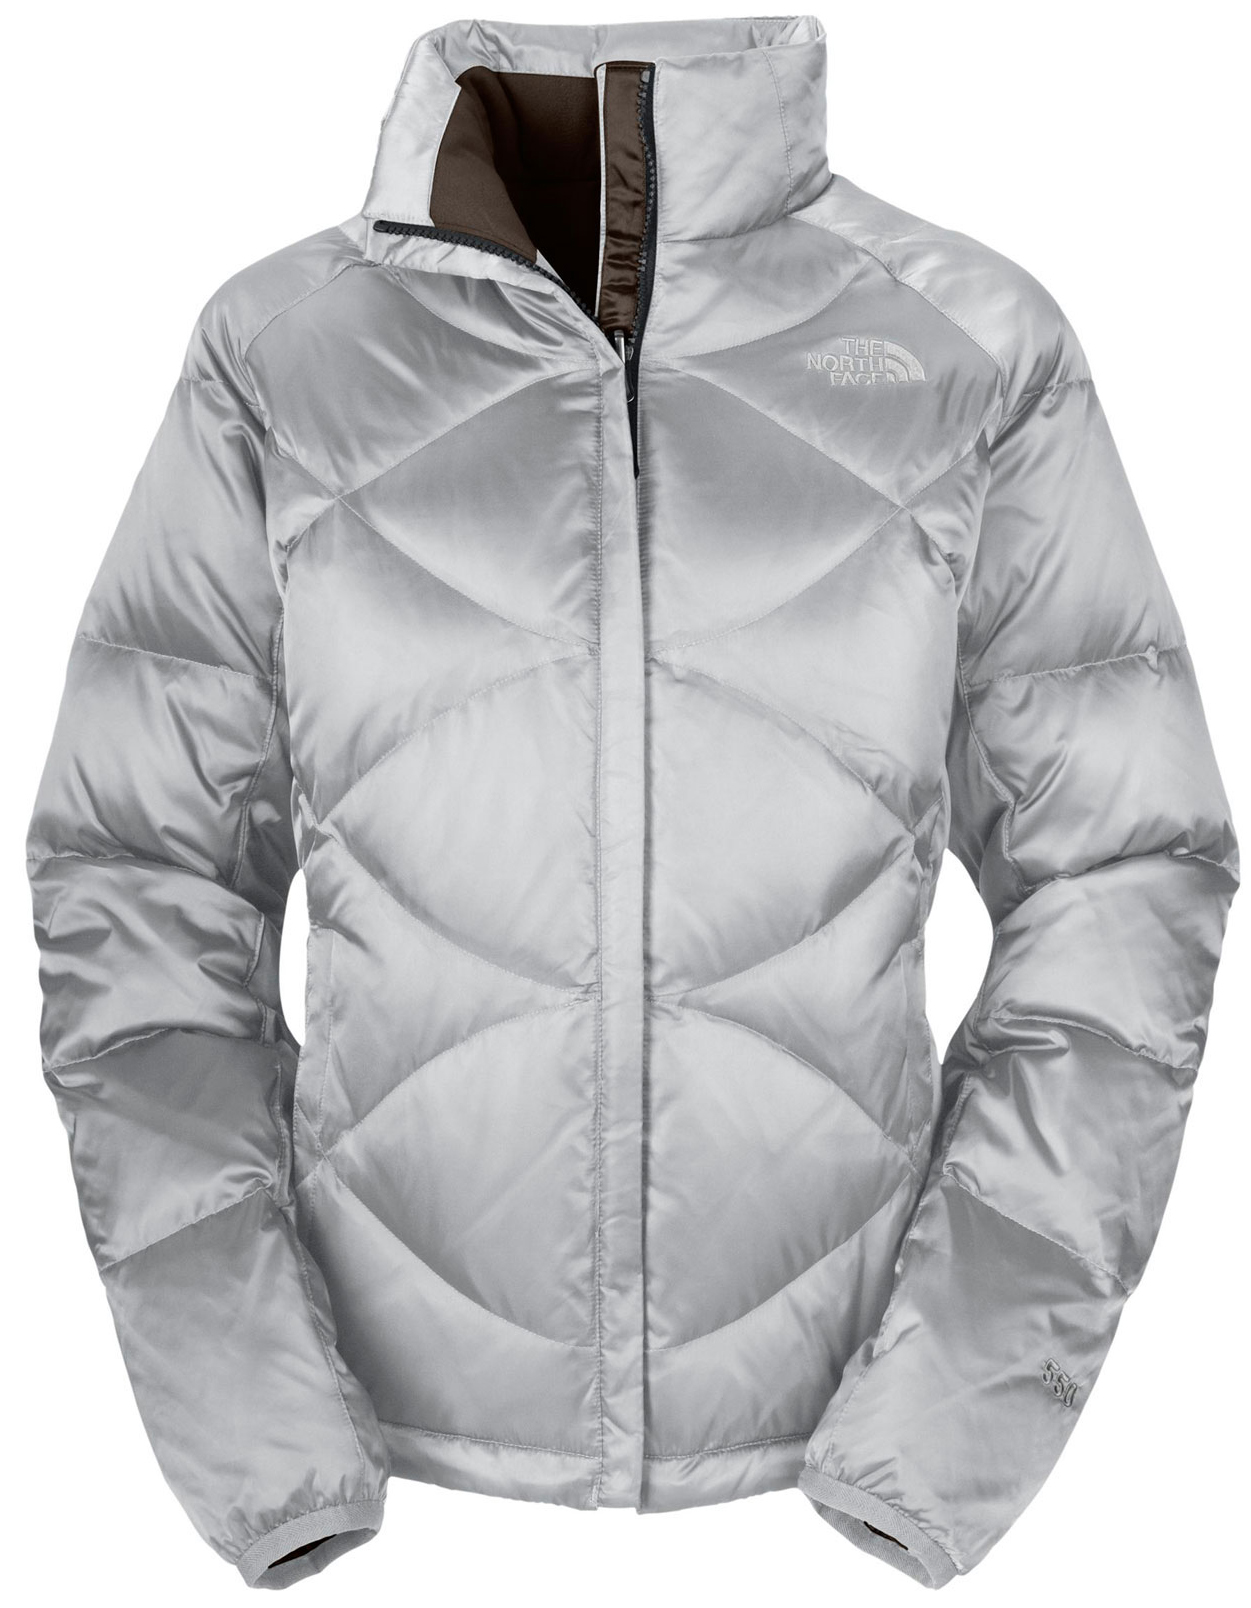 "Key Features of The North Face Aconcagua Jacket: Fabric: body: 50D 94.9 g/m2 (2.8 oz/yd2) satin nylon with DWR insulation: 550 fill goose down Avg Weight: 710 g (25 oz) Center Back: 25"" Luxurious, down-filled, insulating jacket constructed for warmth and comfort. Standard fit Brushed internal collar Internal security pocket Two hand pockets Hem cinch-cord - $119.95"